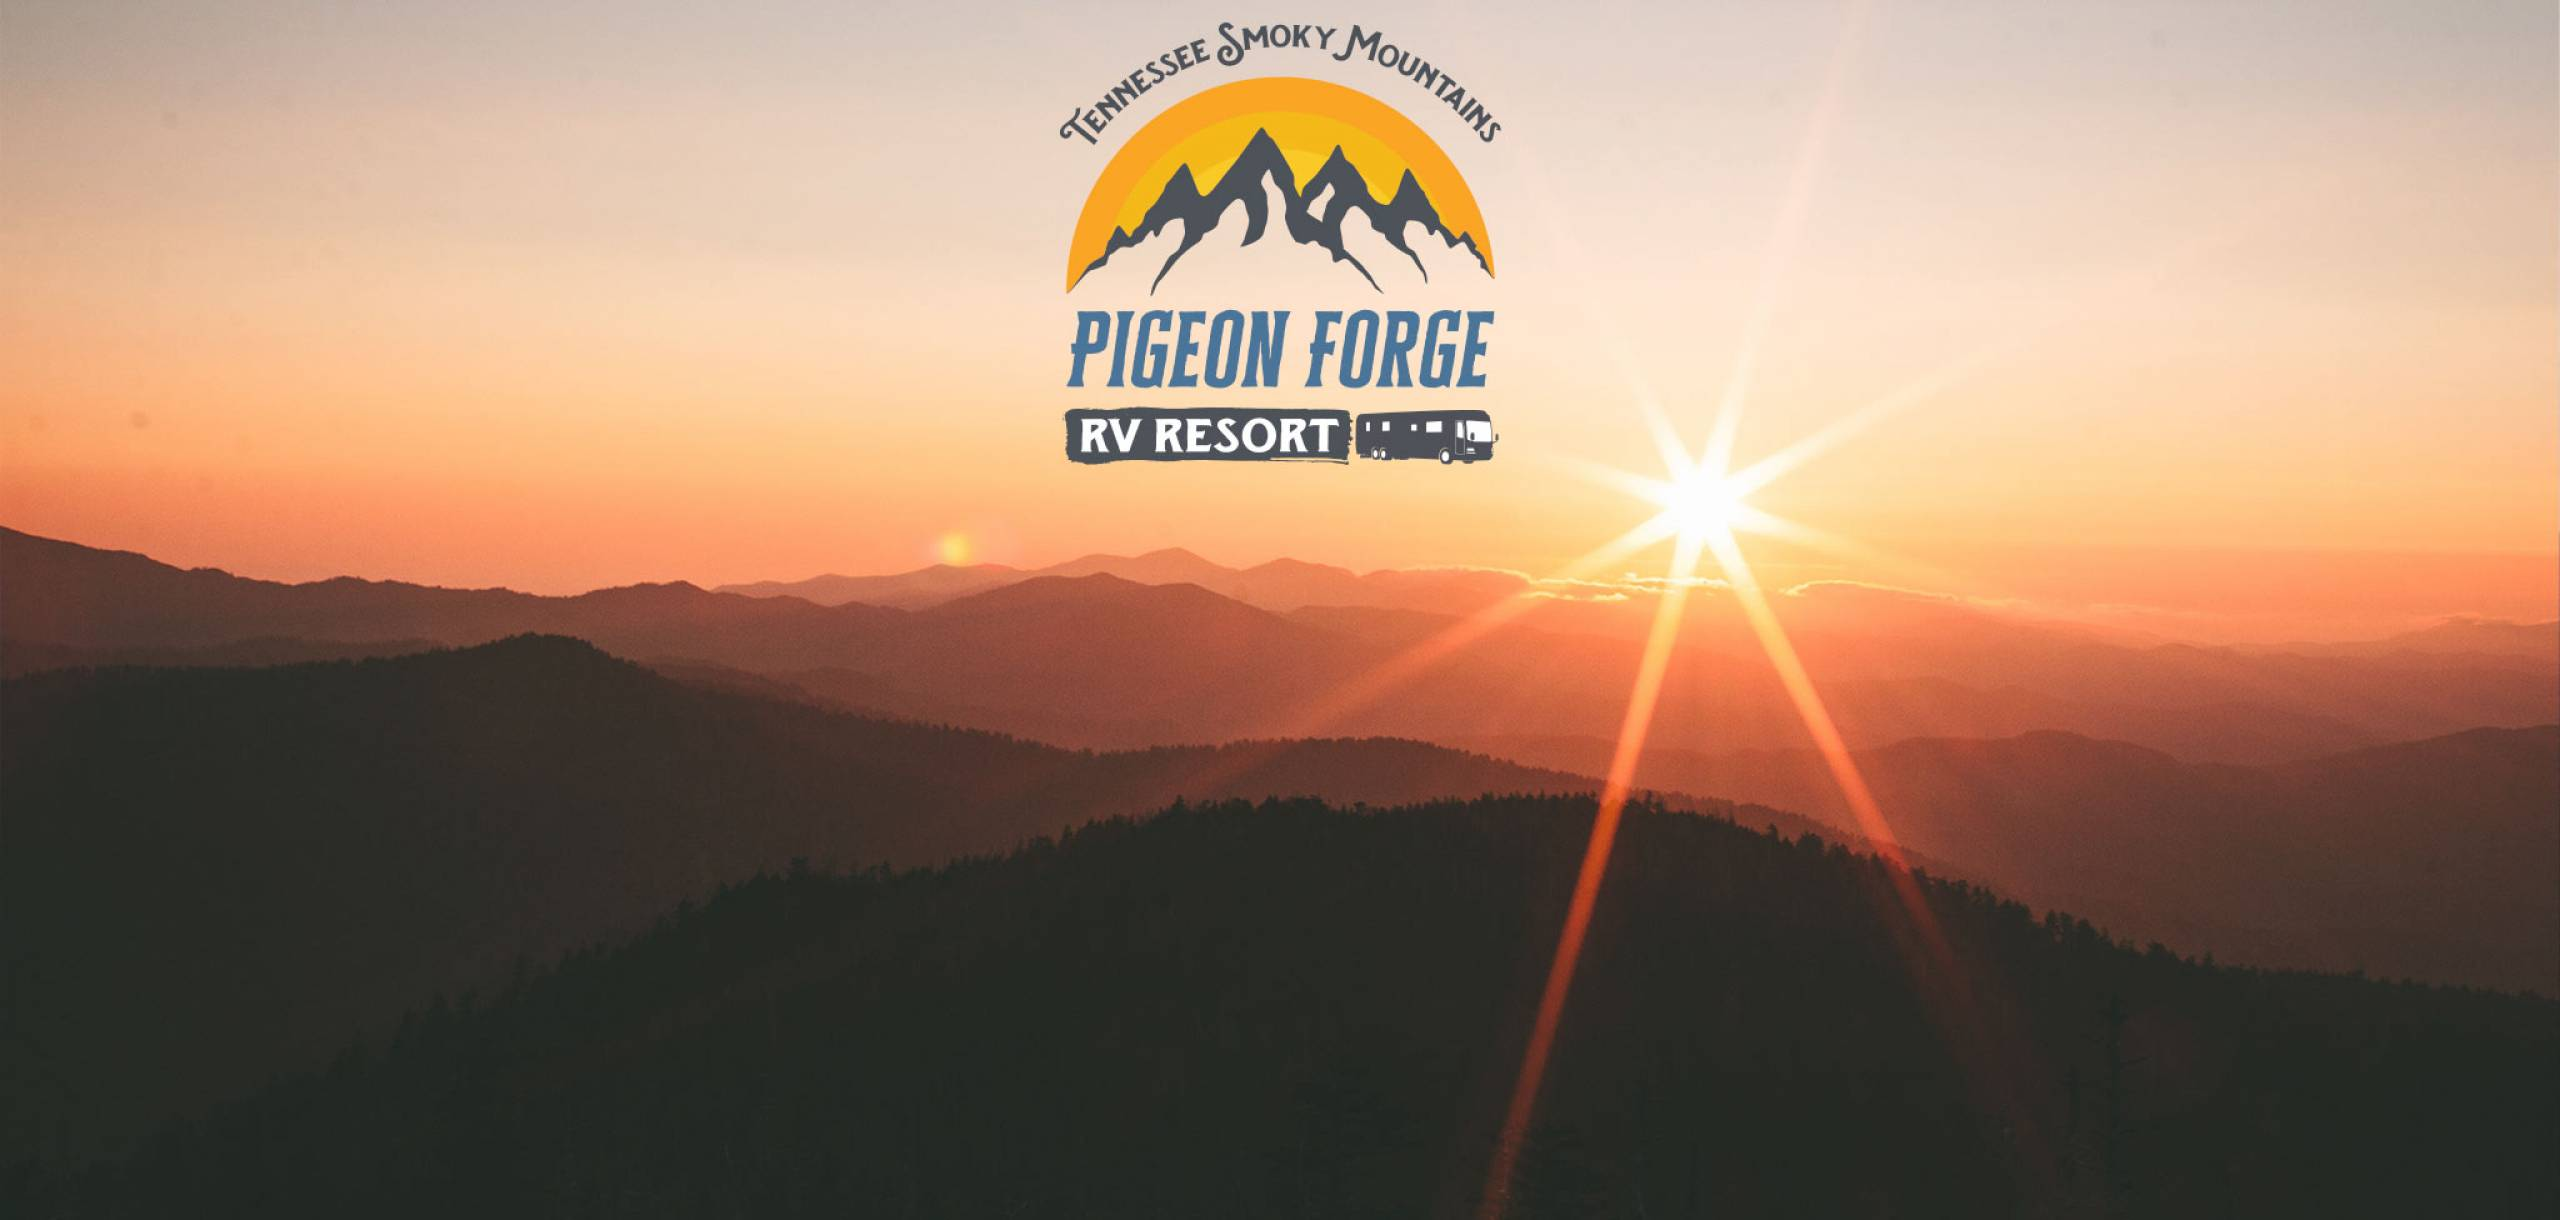 Pigeon Forge RV Resort logo over the Smokies with sunset in the background.